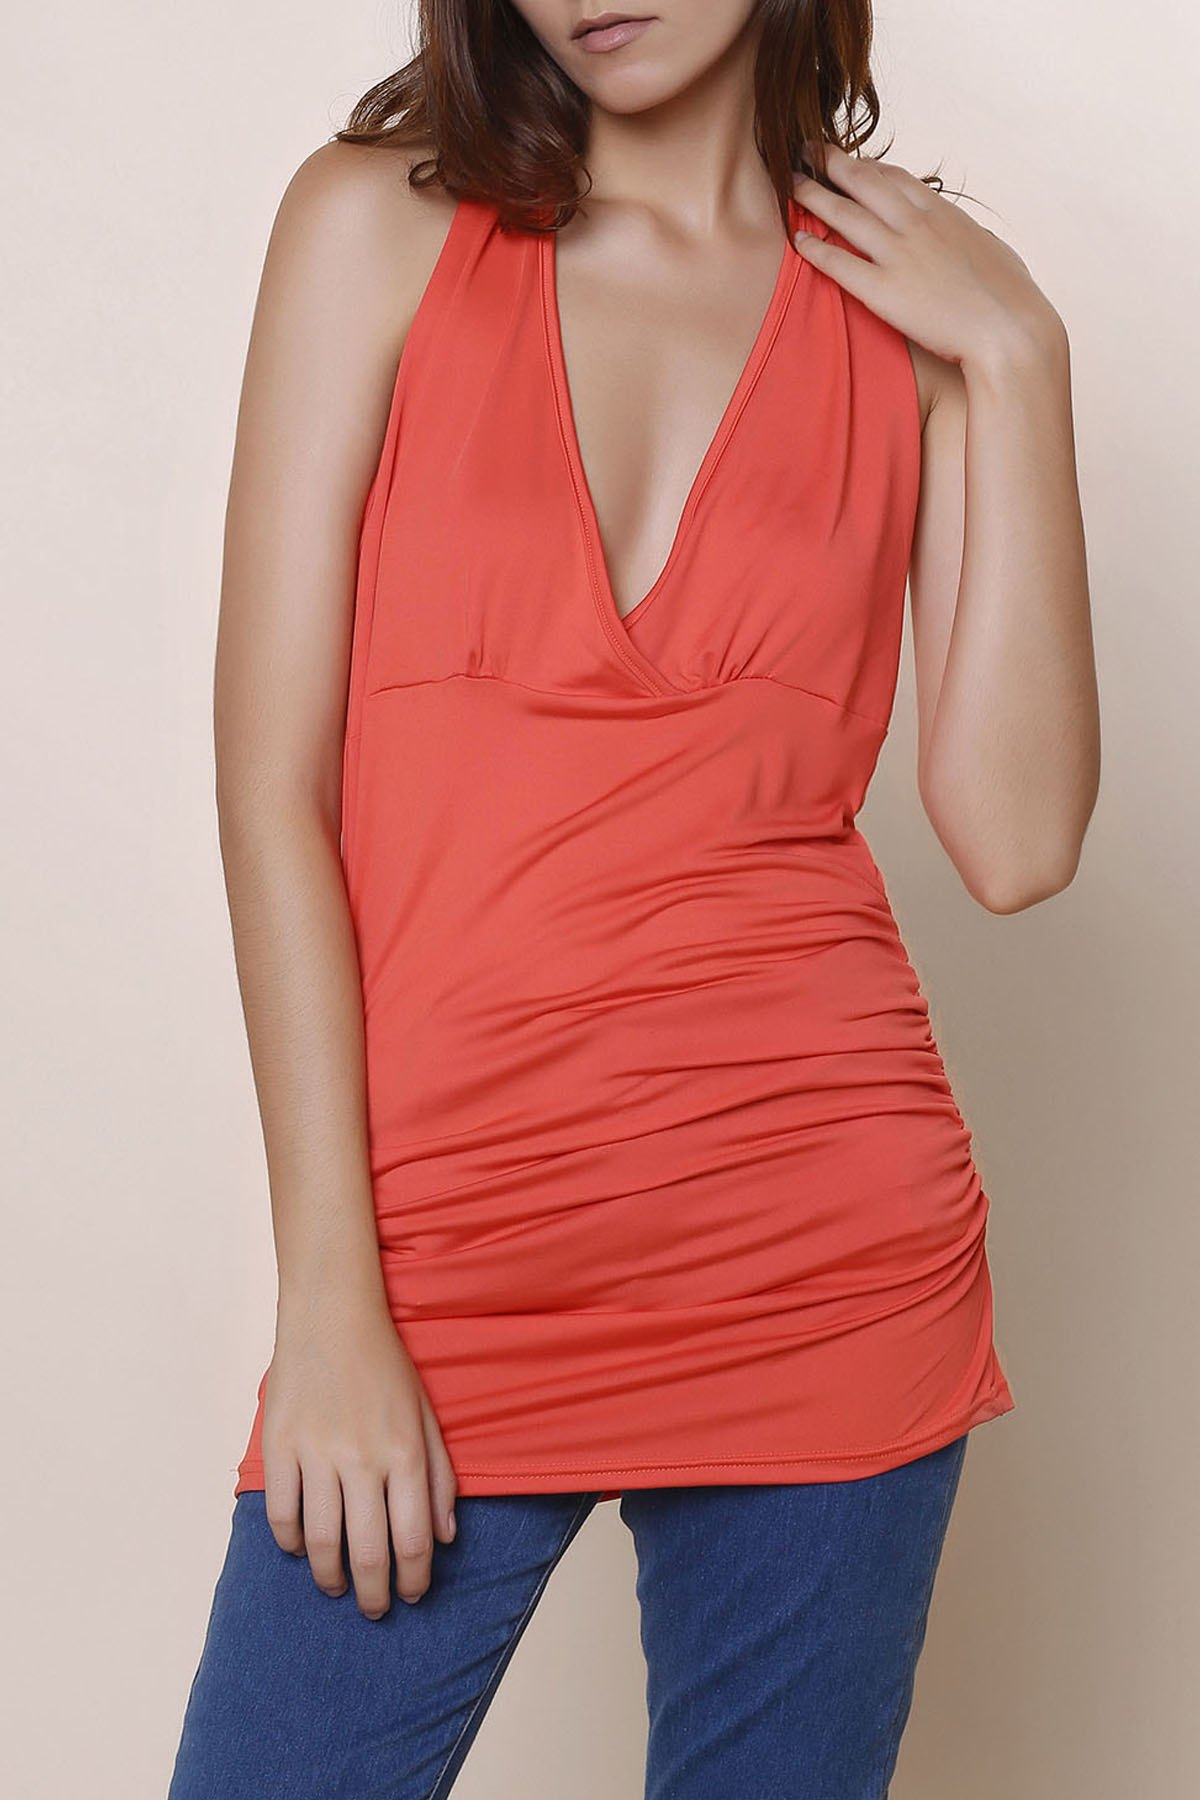 Stylish Halter Sleeveless Solid Color Backless Ruched Women's Tank Top